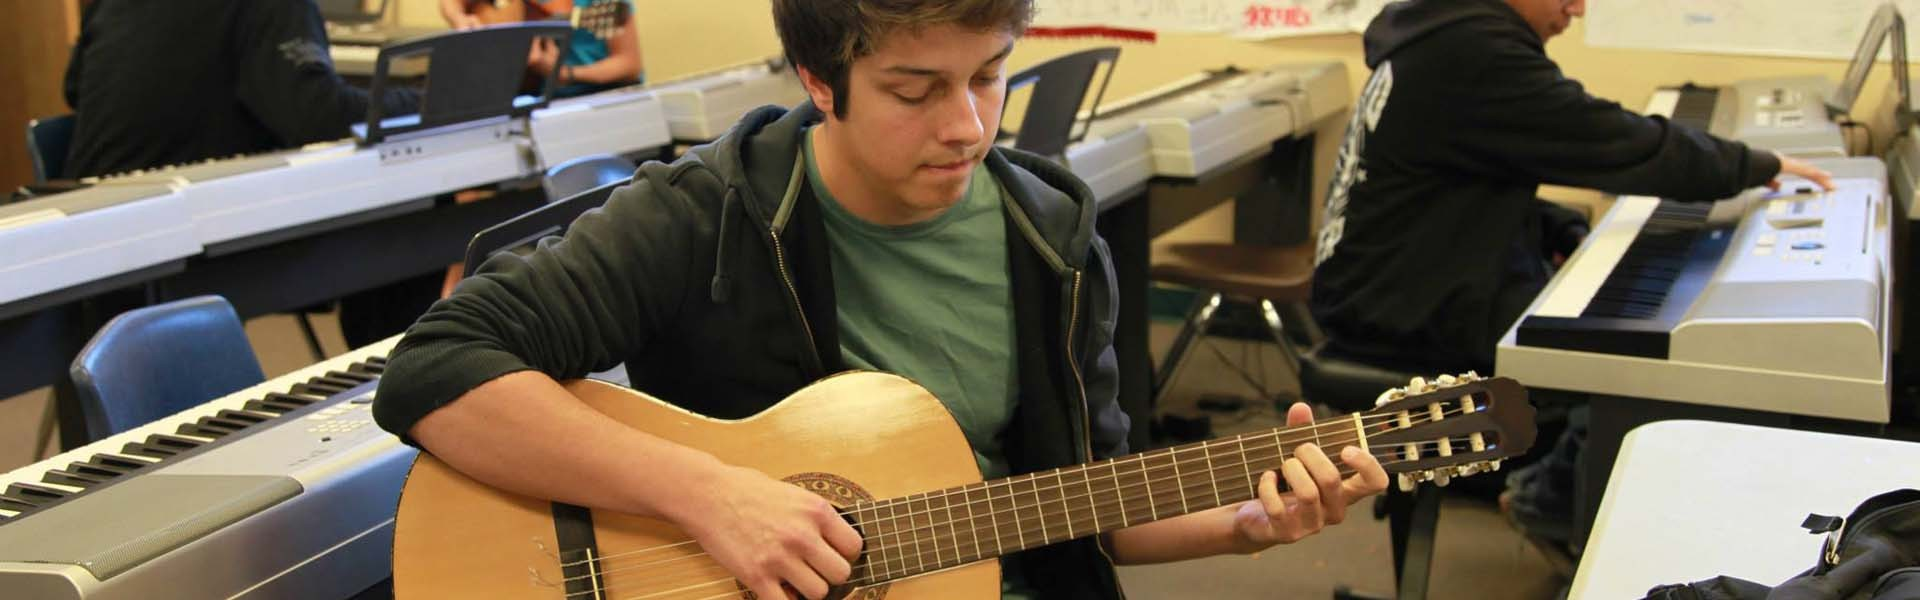 Sequoia Charter Schools District - Sequoia High School Arizona USA Guitar 2019